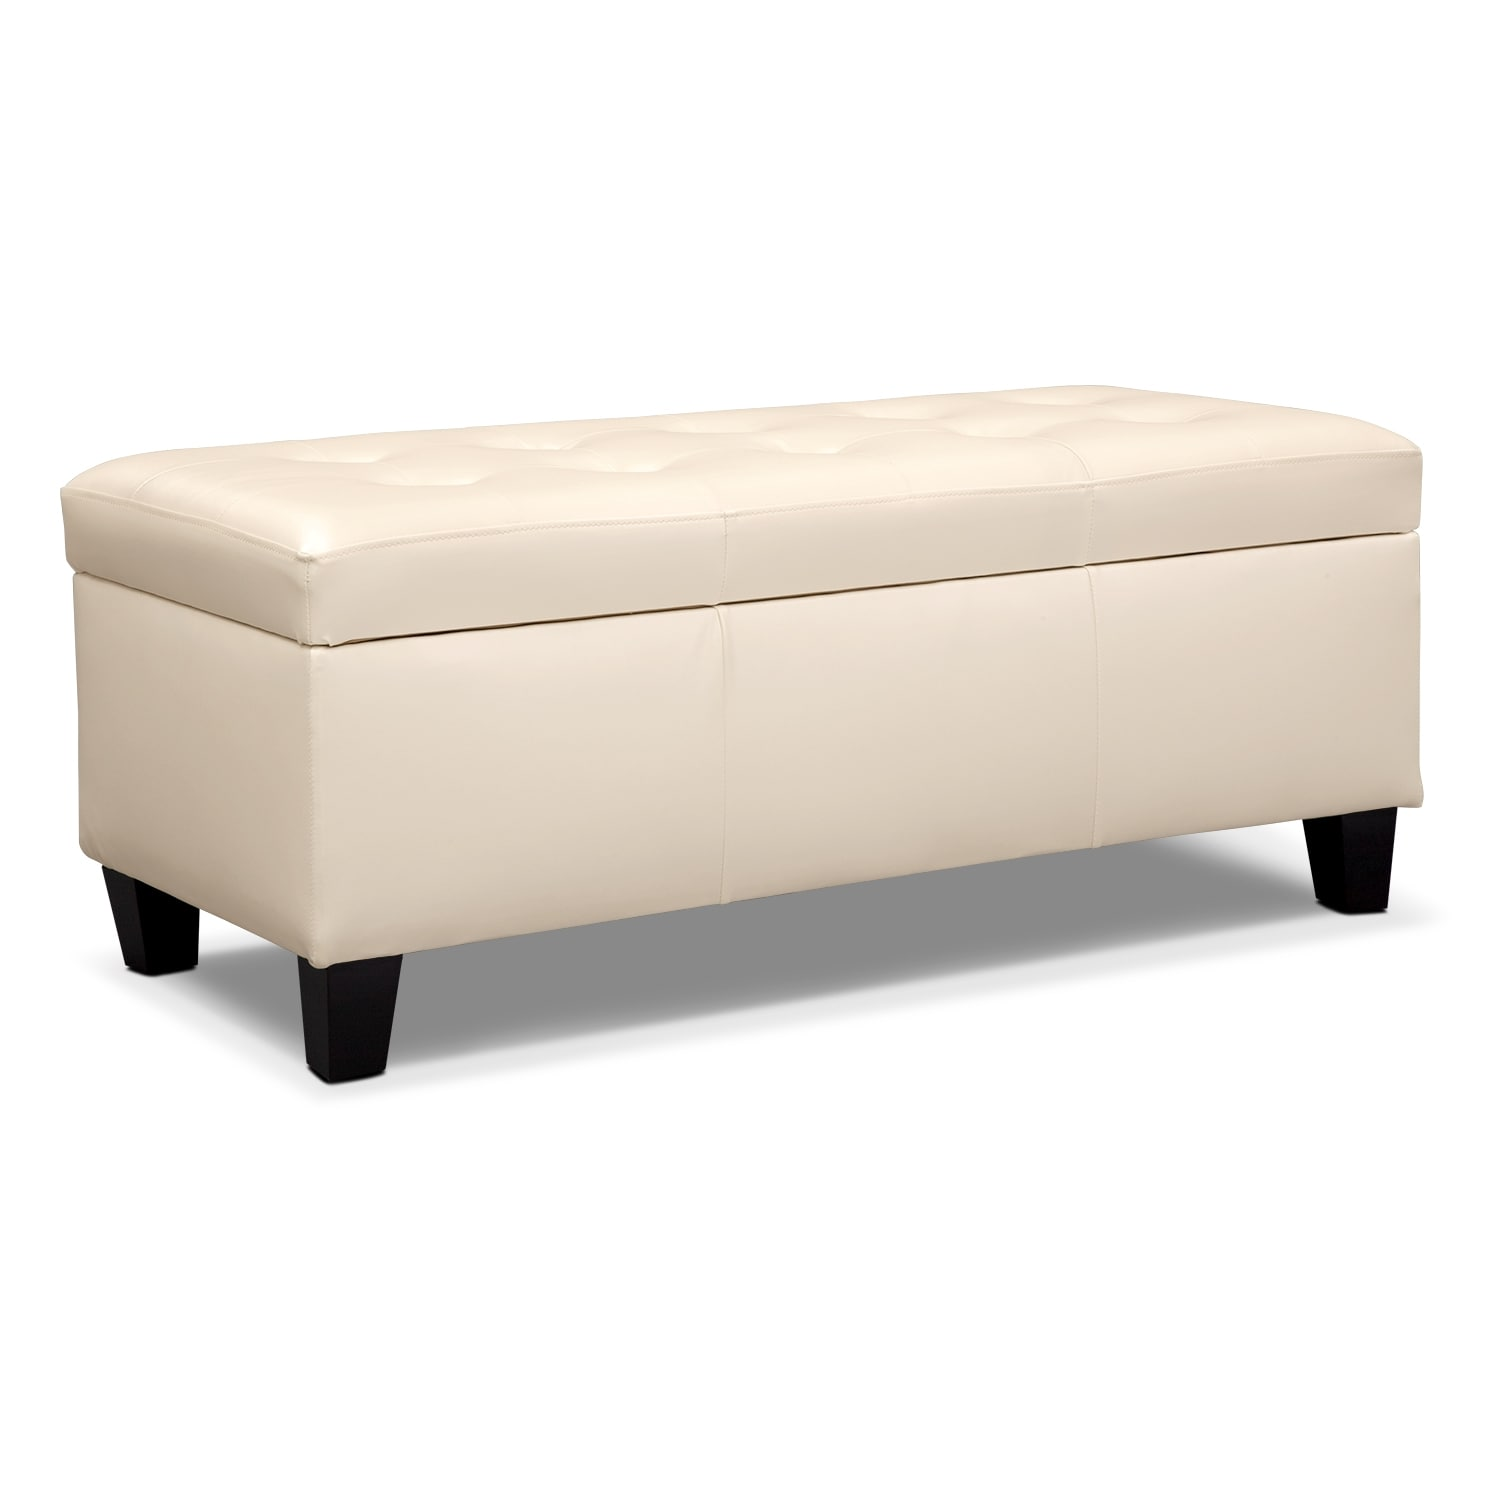 Kids Furniture - Valerie Pearl Storage Bench